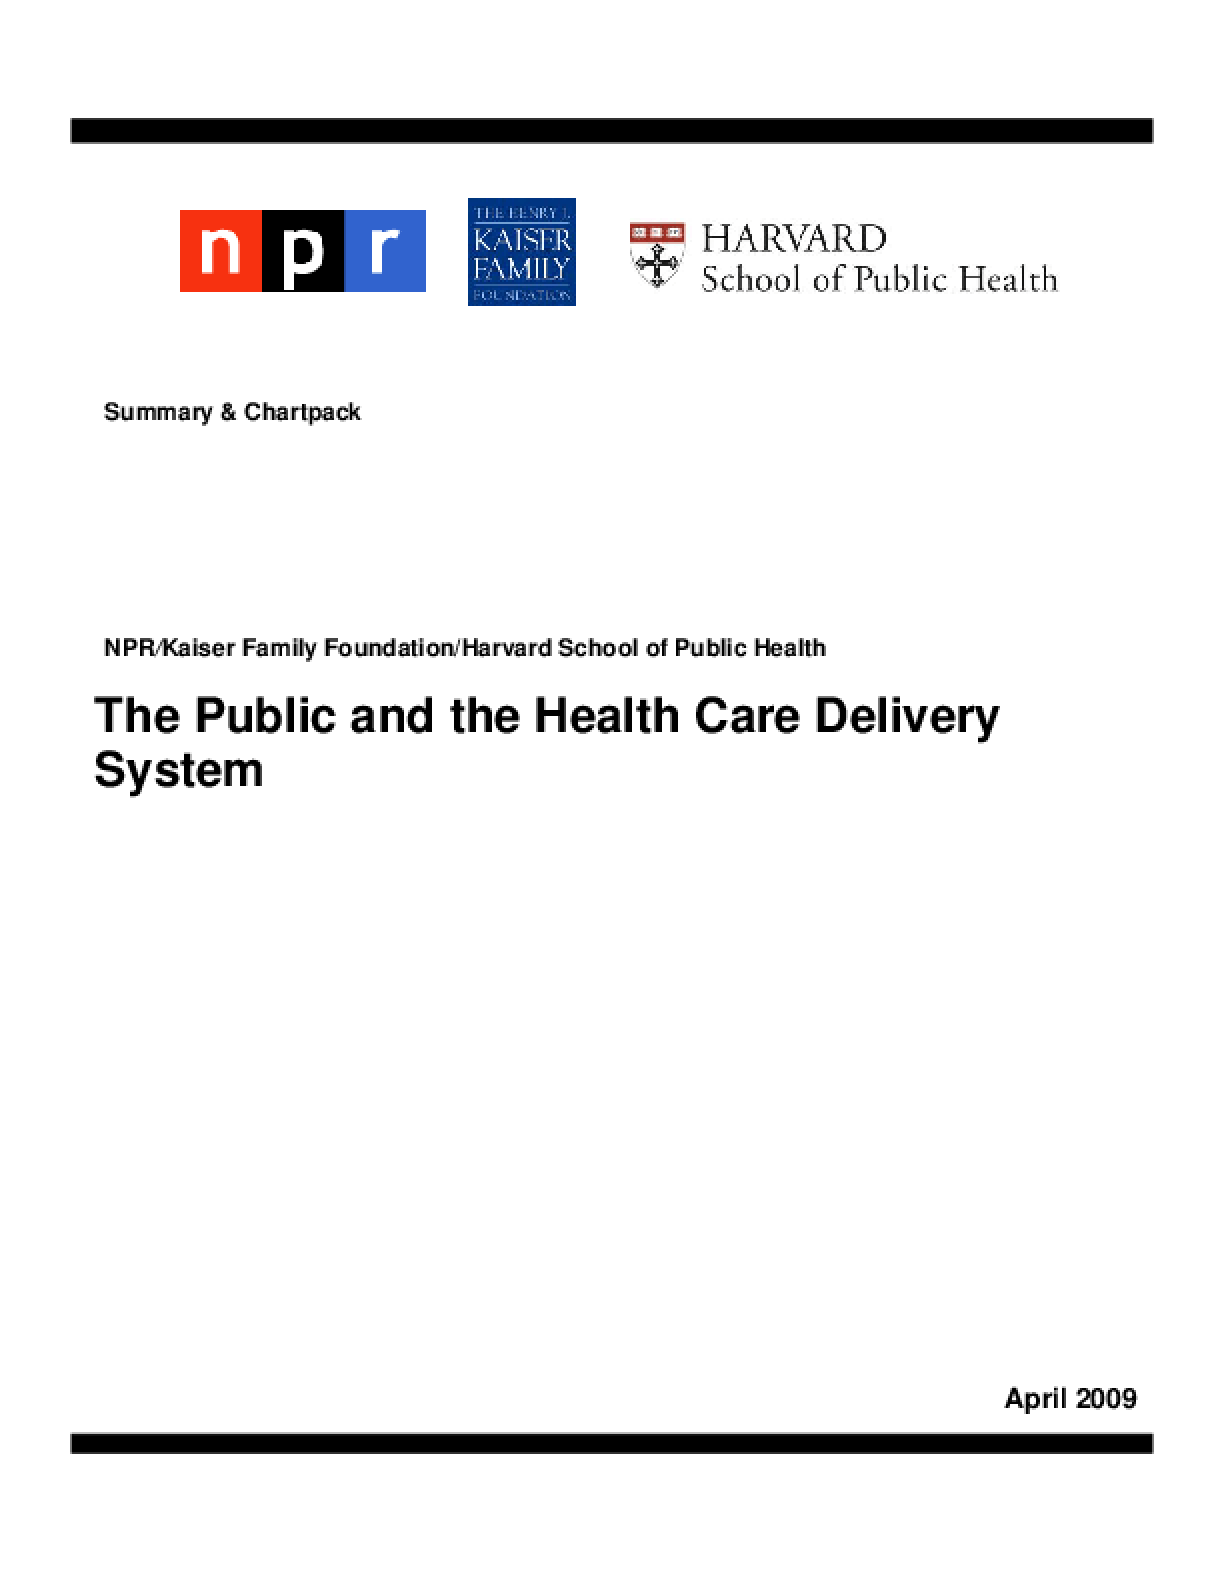 The Public and the Health Care Delivery System